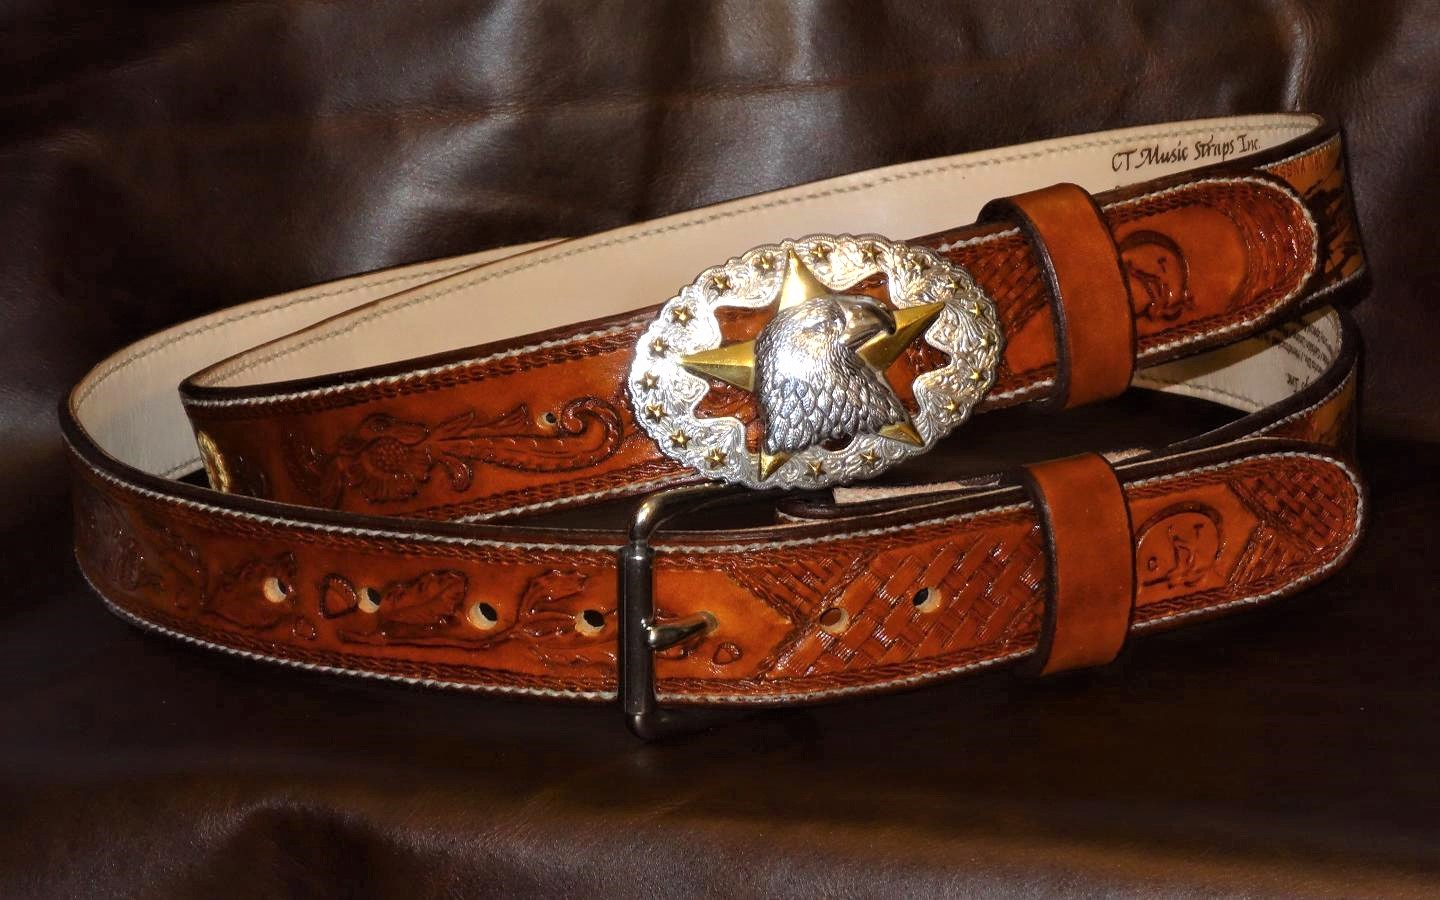 His and Hers Hand Crafted Western and Traditional Belts.